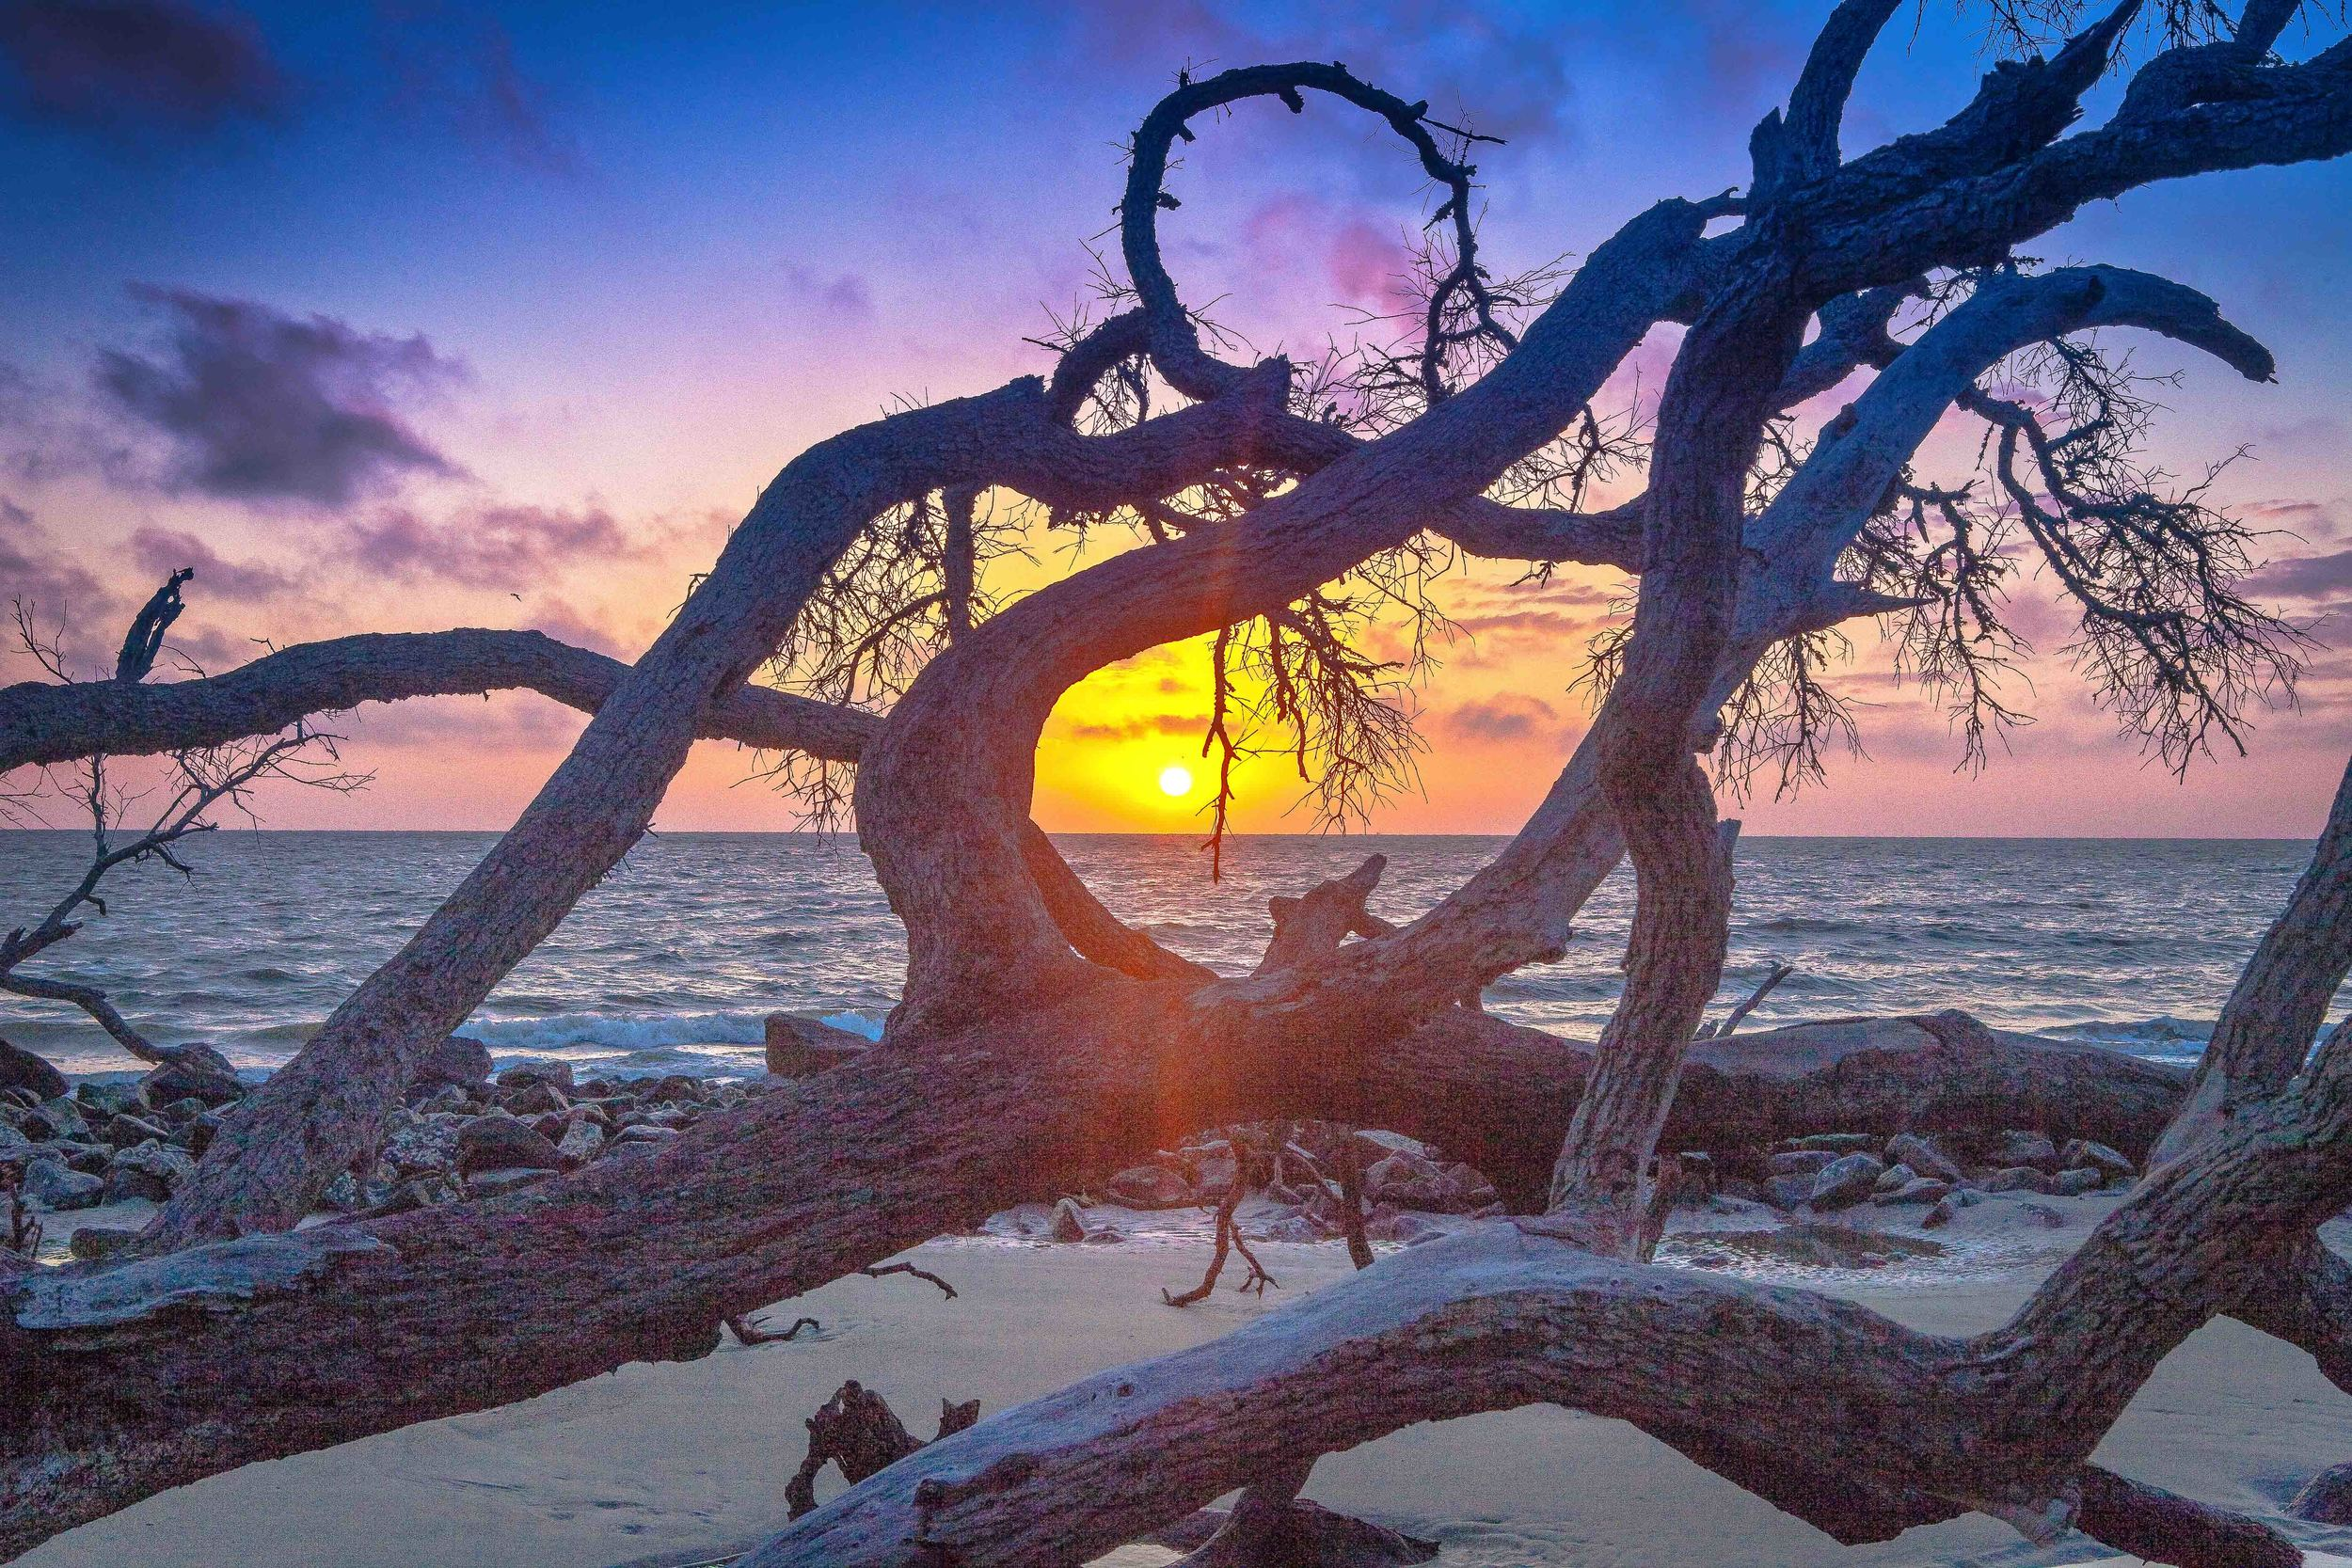 """Photo Credit: """"Sunrise at Driftwood Beach"""" courtesy of Achilles Morin Photography Galleries  http://www.achillesmorin.com/"""